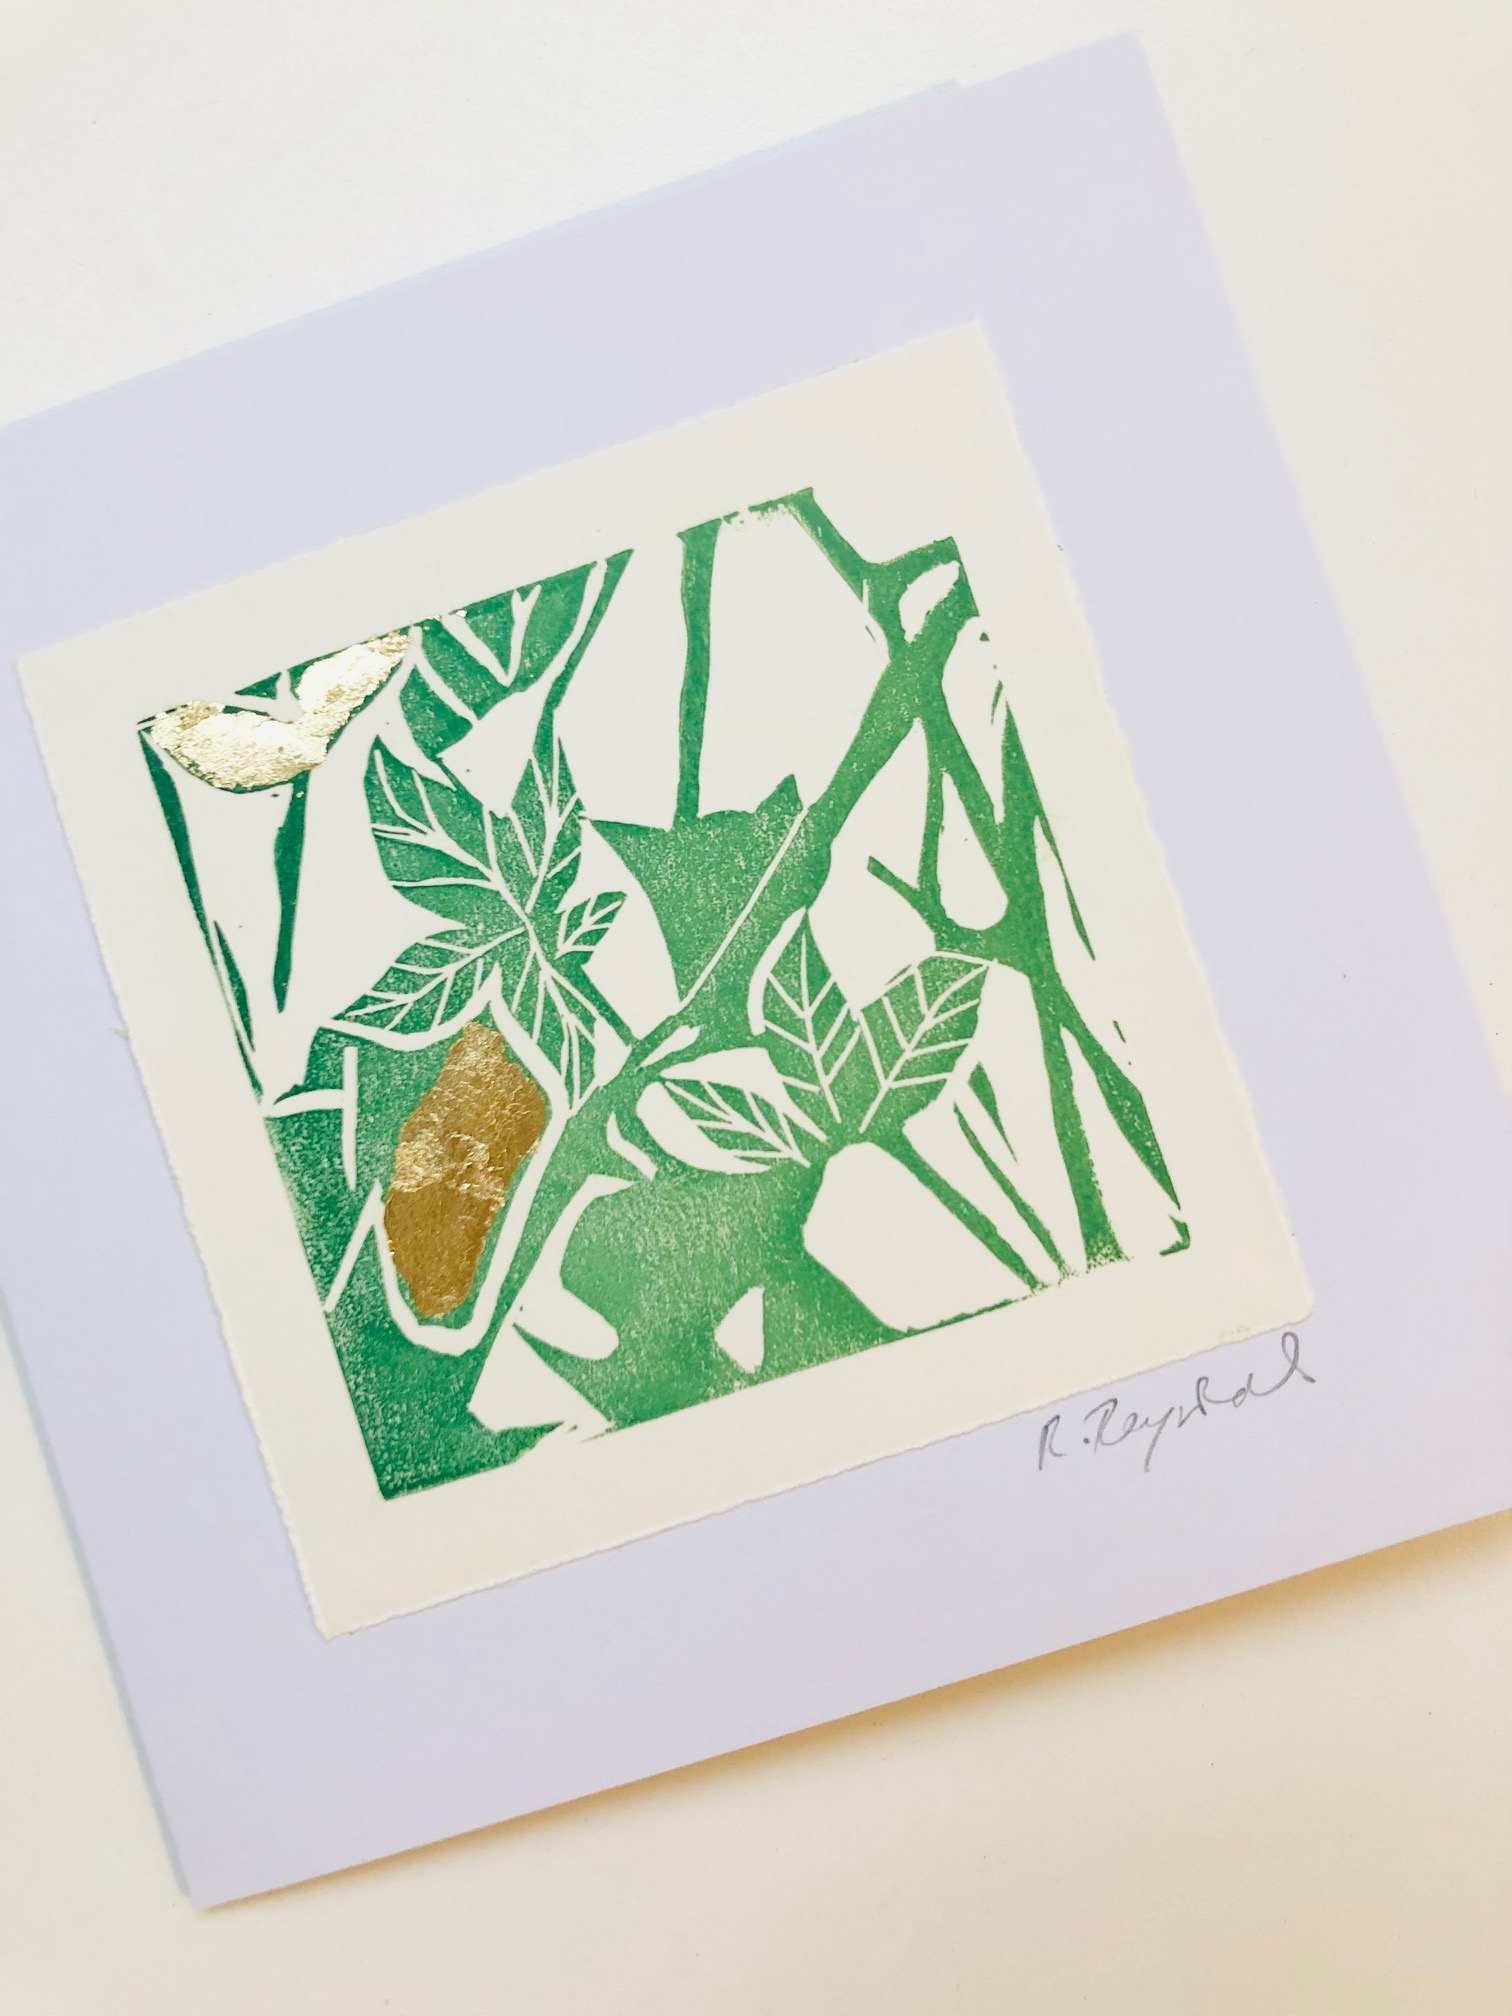 Handprinted Lino Cut Greetings Card by Rachel Reynolds